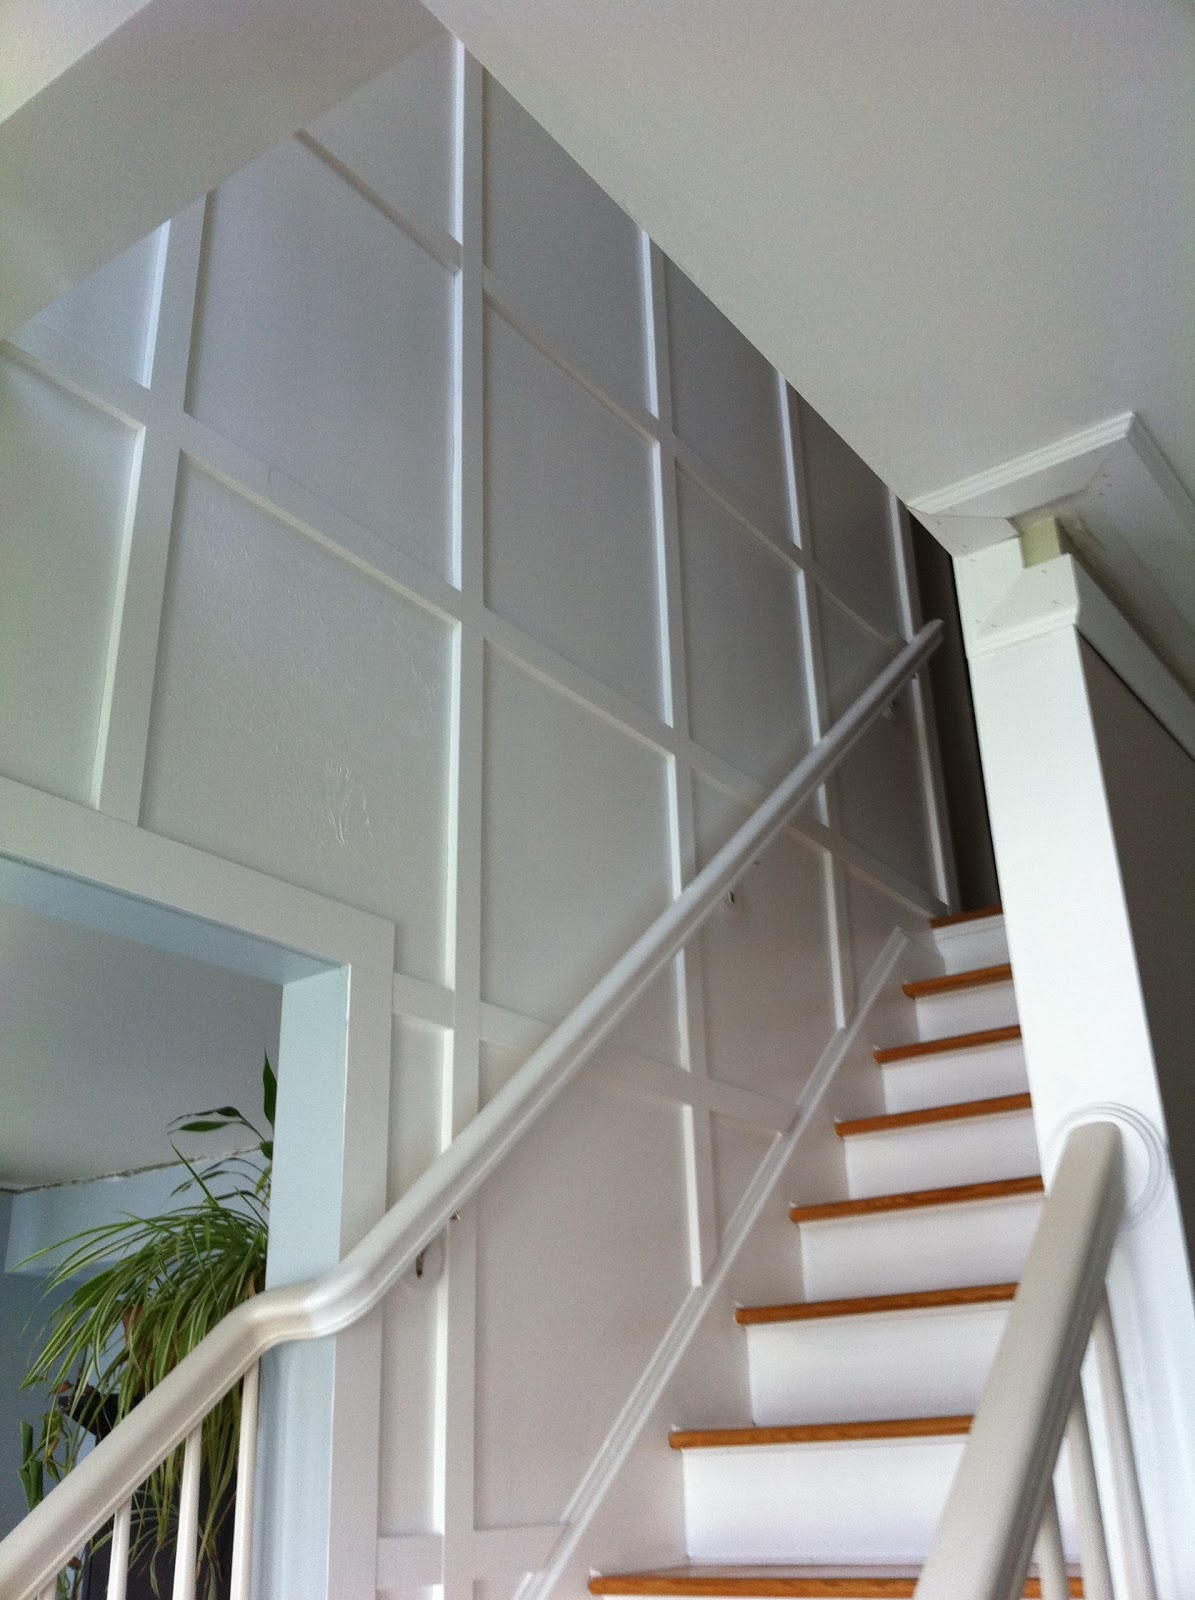 Staircase Wall Molding Treatments | myideasbedroom.com